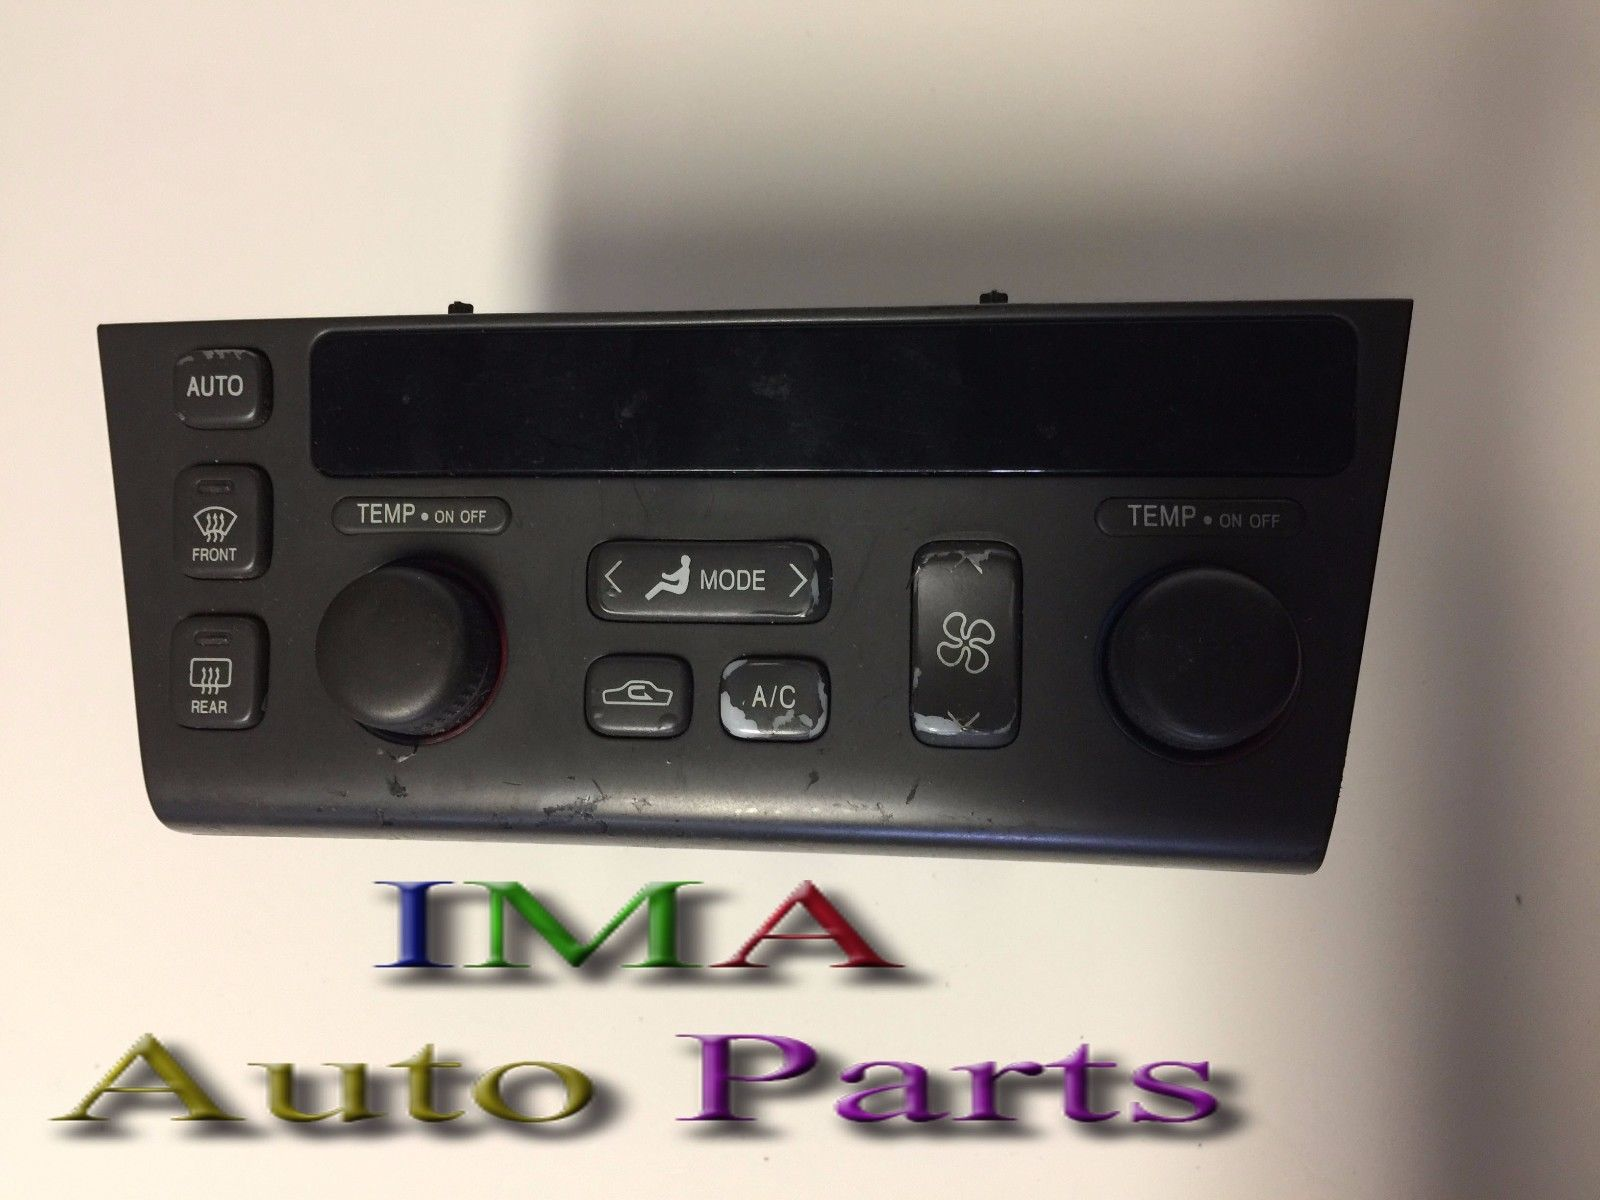 2001 CADILLAC SEVILLE HEATER AC TEMPERATURE CLIMATE CONTROL SWITCH PANEL OEM 09383026